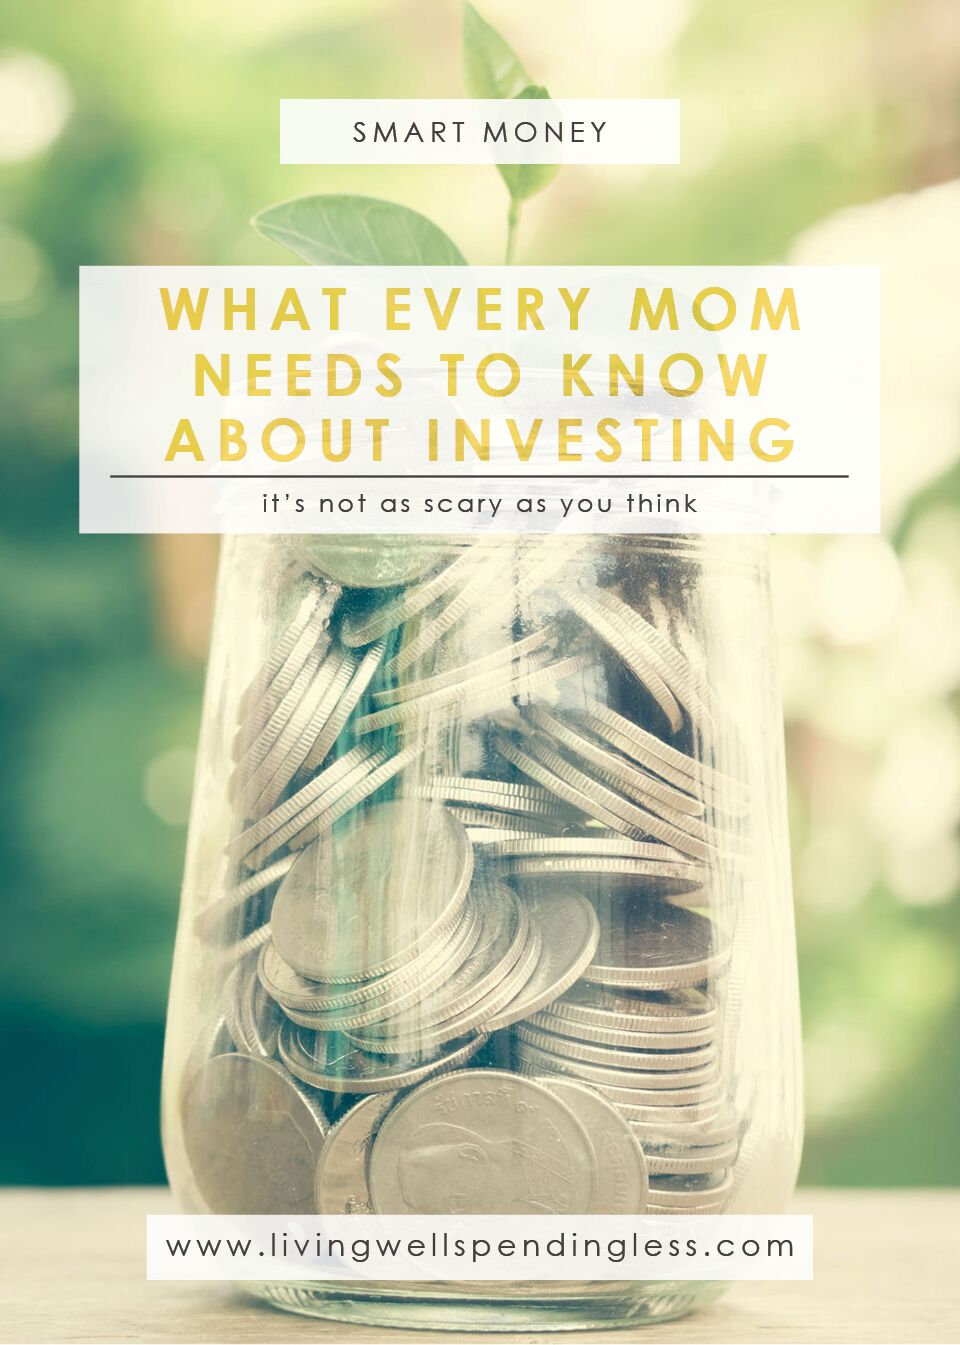 What Every Mom Needs to Know About Investing | Money Investing Tips for Moms | Financial Tips for Moms